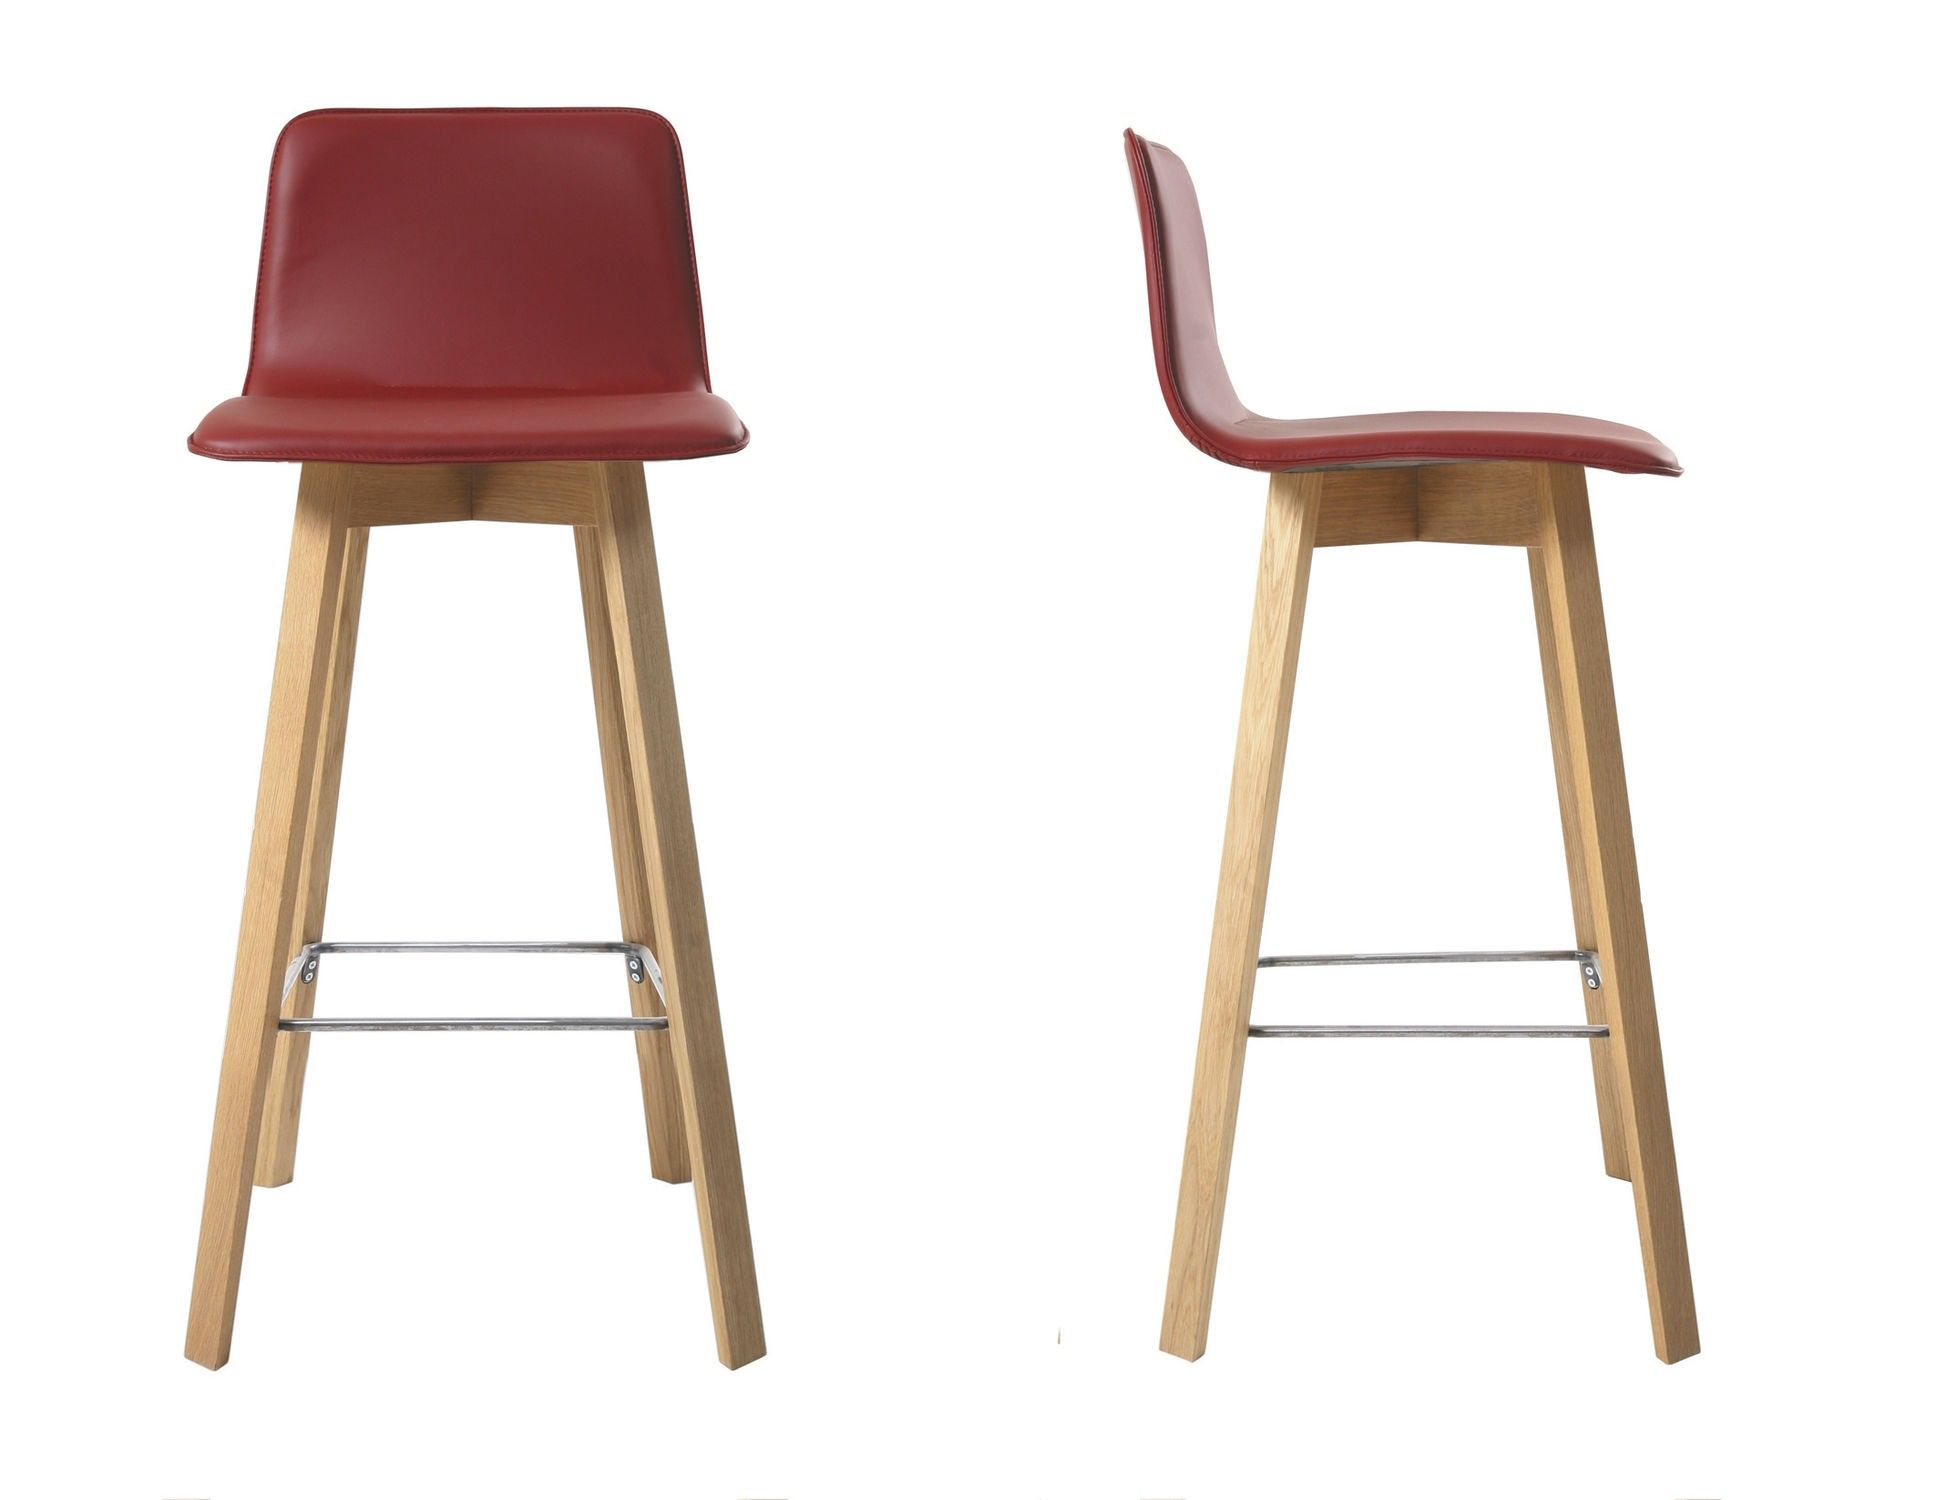 Enjoyable Pin On Stools For The Kitchen Gmtry Best Dining Table And Chair Ideas Images Gmtryco